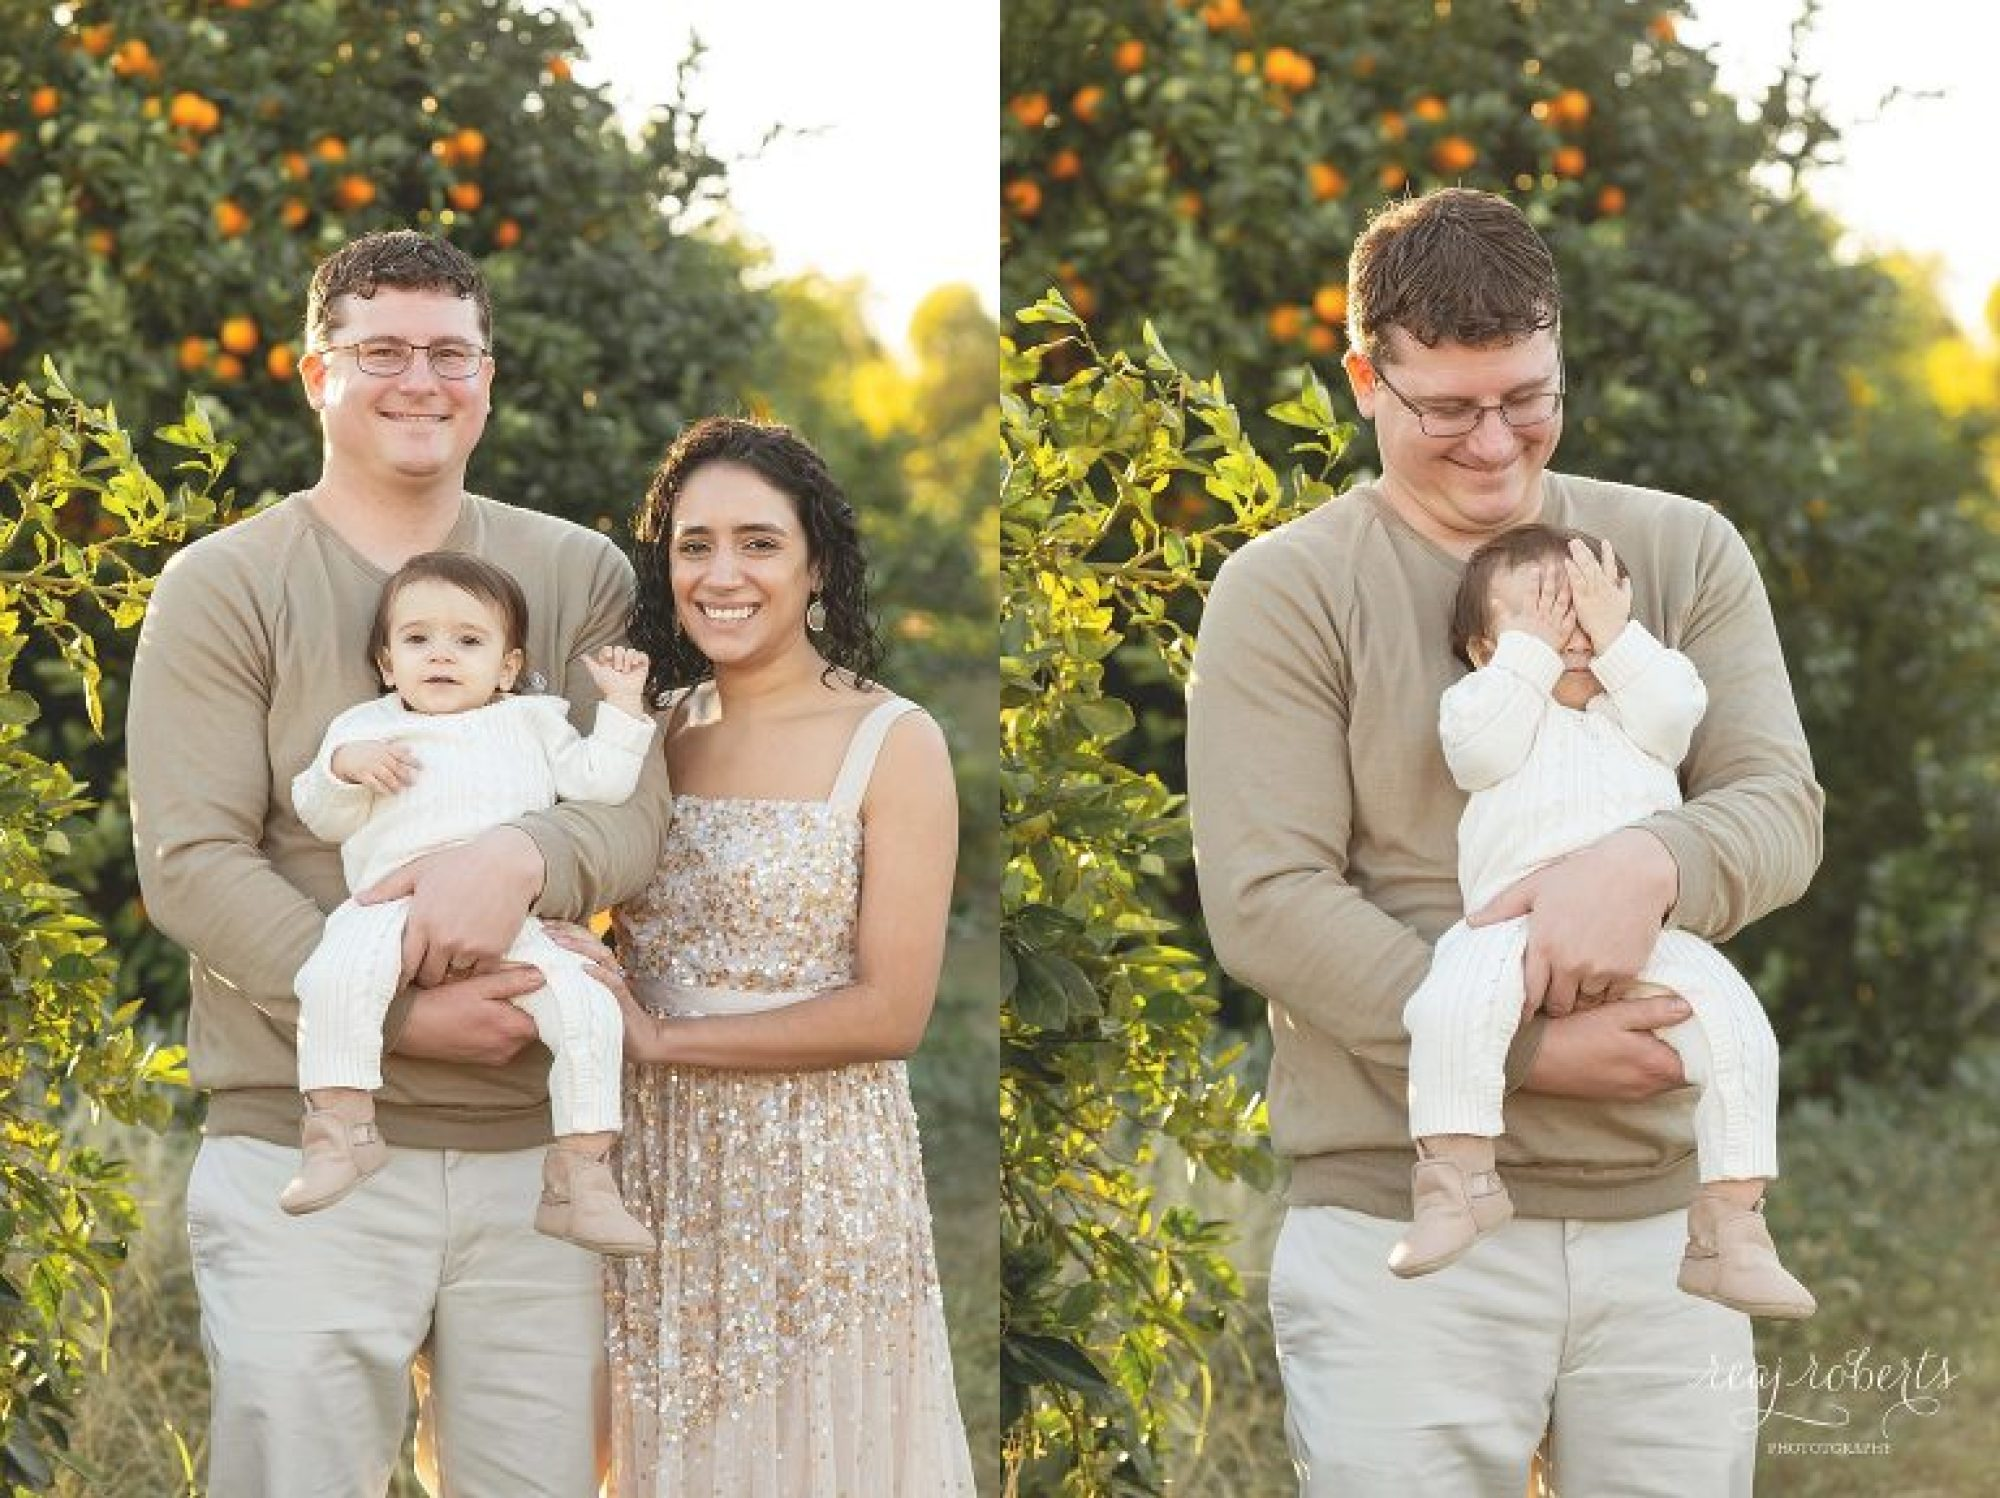 Family Poses in Citrus Grove during sunset | Phoenix Family Photographer | Reaj Roberts Photography